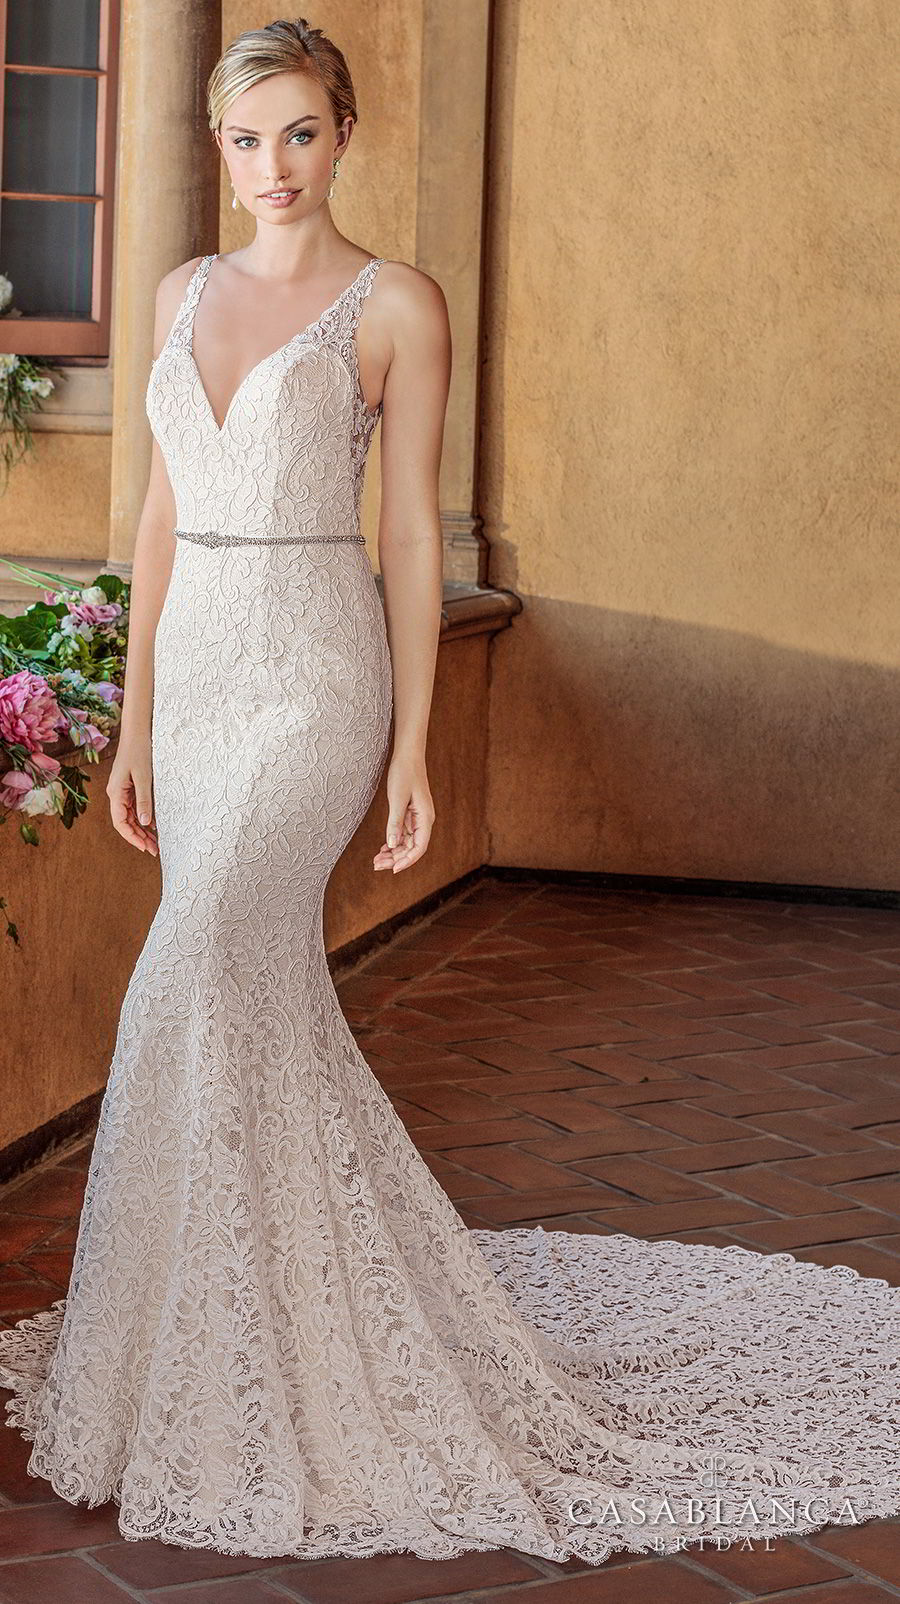 casablanca spring 2018 sleeveless strap sweetheart neckline full embellishment elegant fit and flare wedding dress open scoop back chapel train (nikki) mv